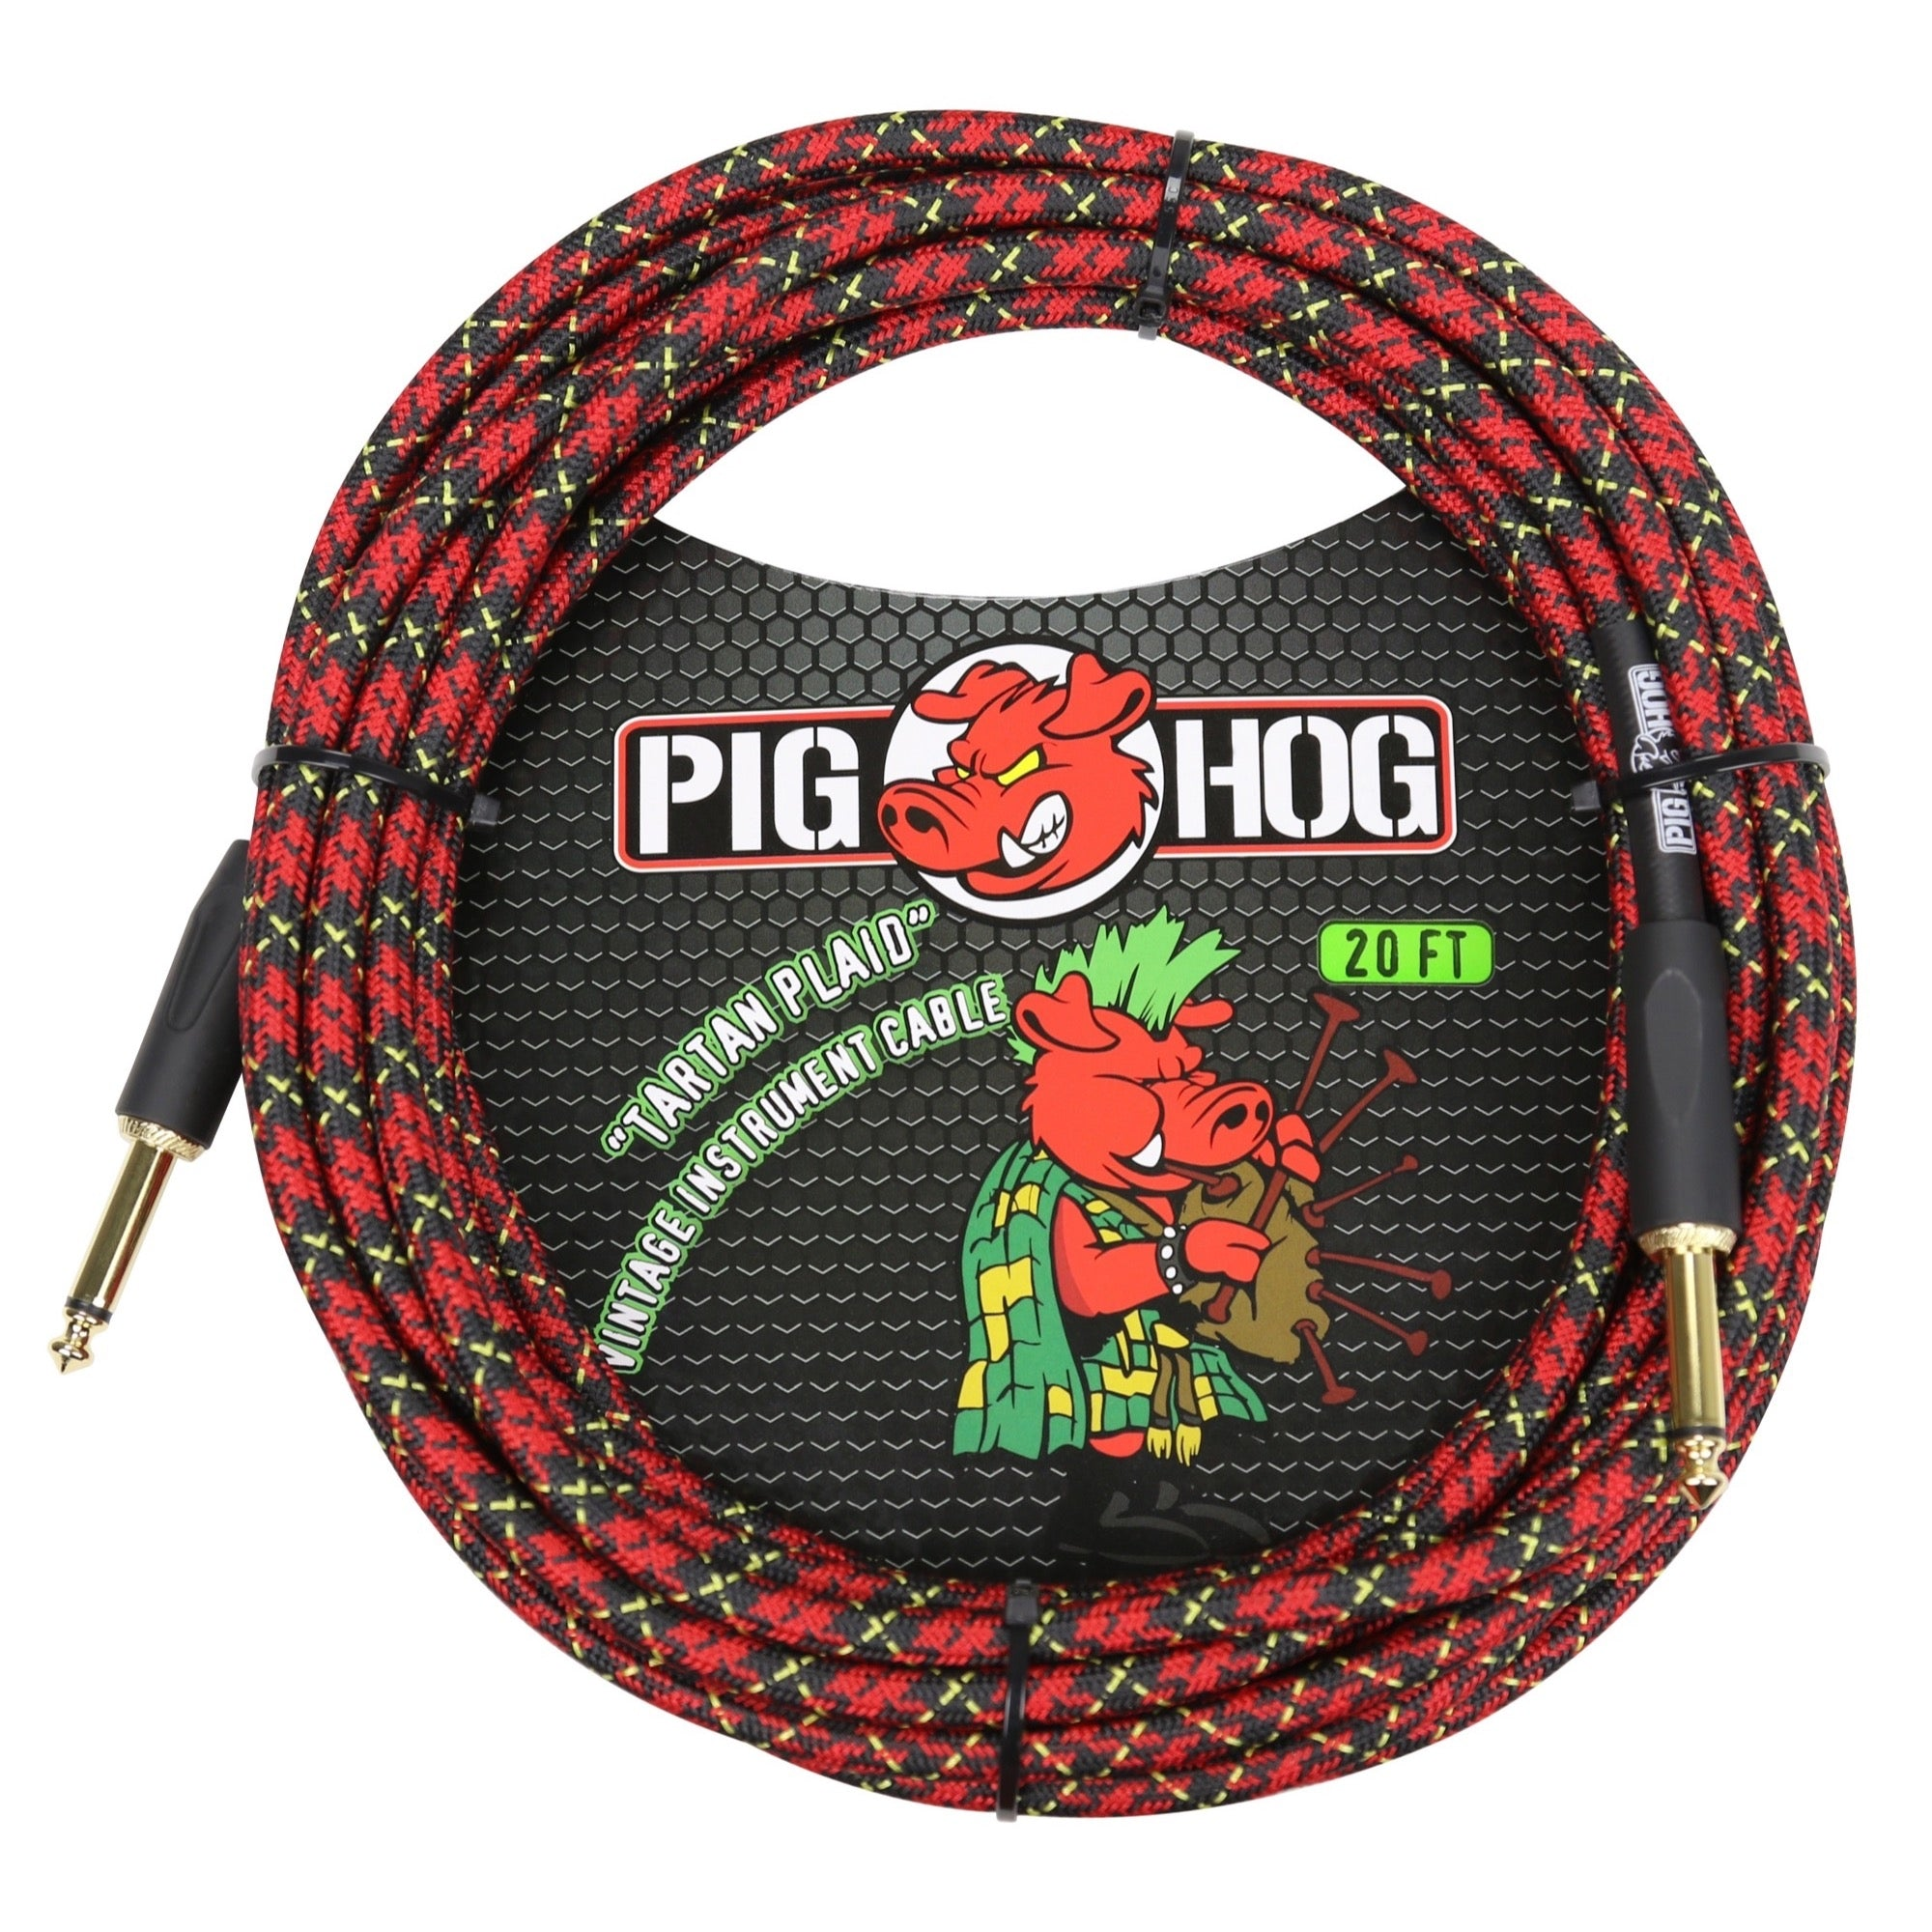 Pig Hog Vintage Series Instrument Cable, 1/4 Inch Straight to 1/4 Inch Straight, Tartan Plaid, 20'